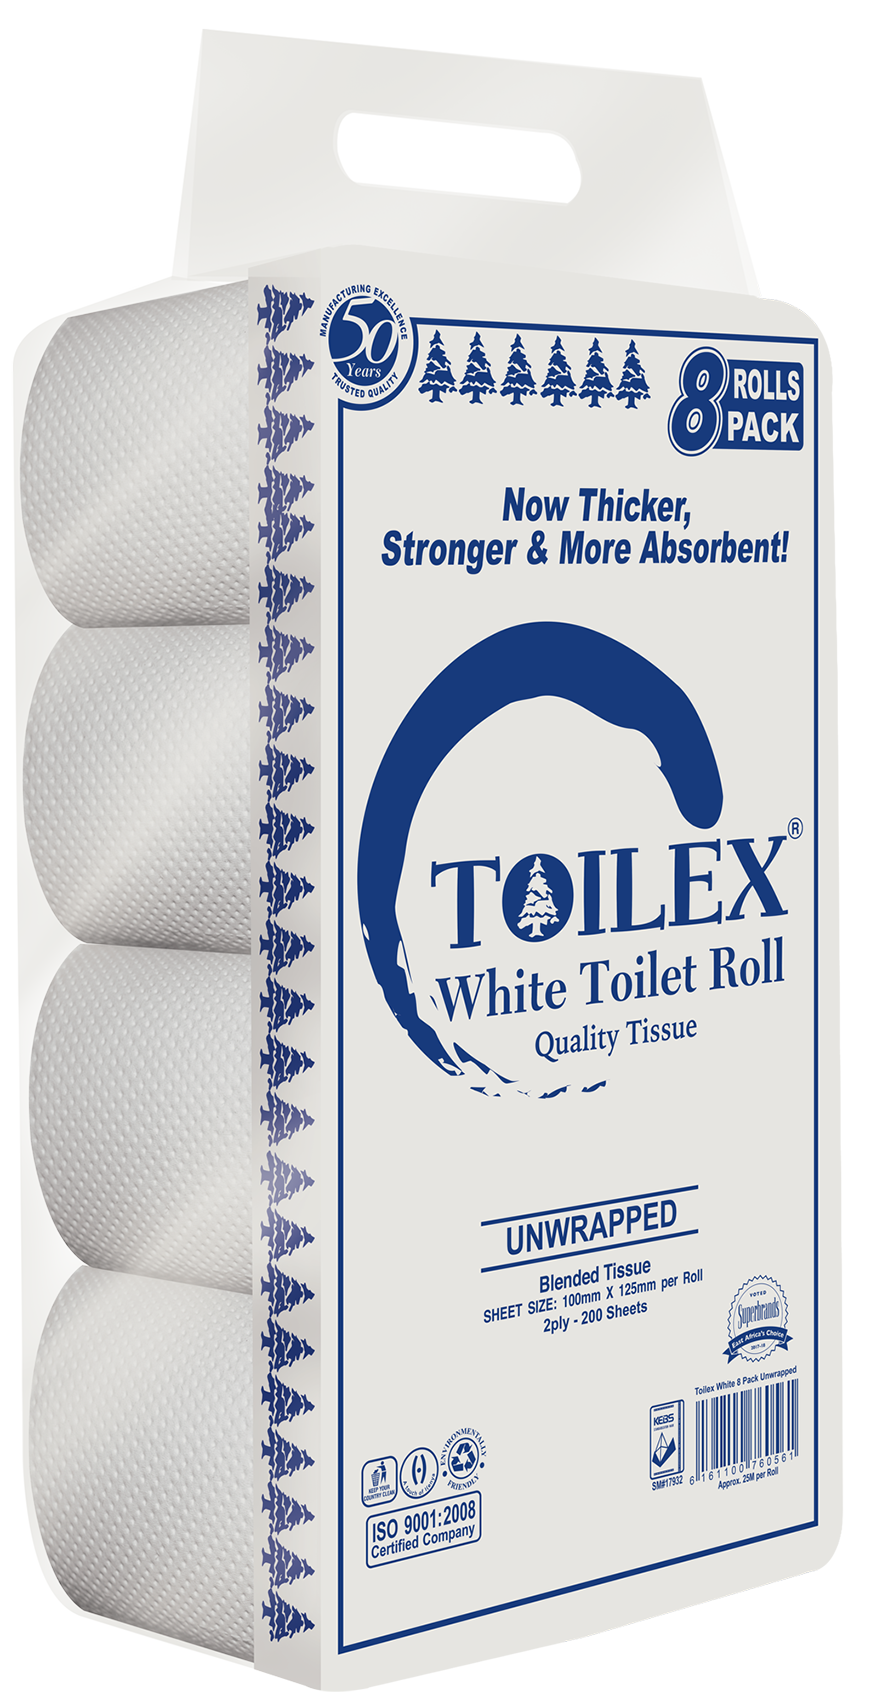 Toilex-8pack.png - 1.06 MB